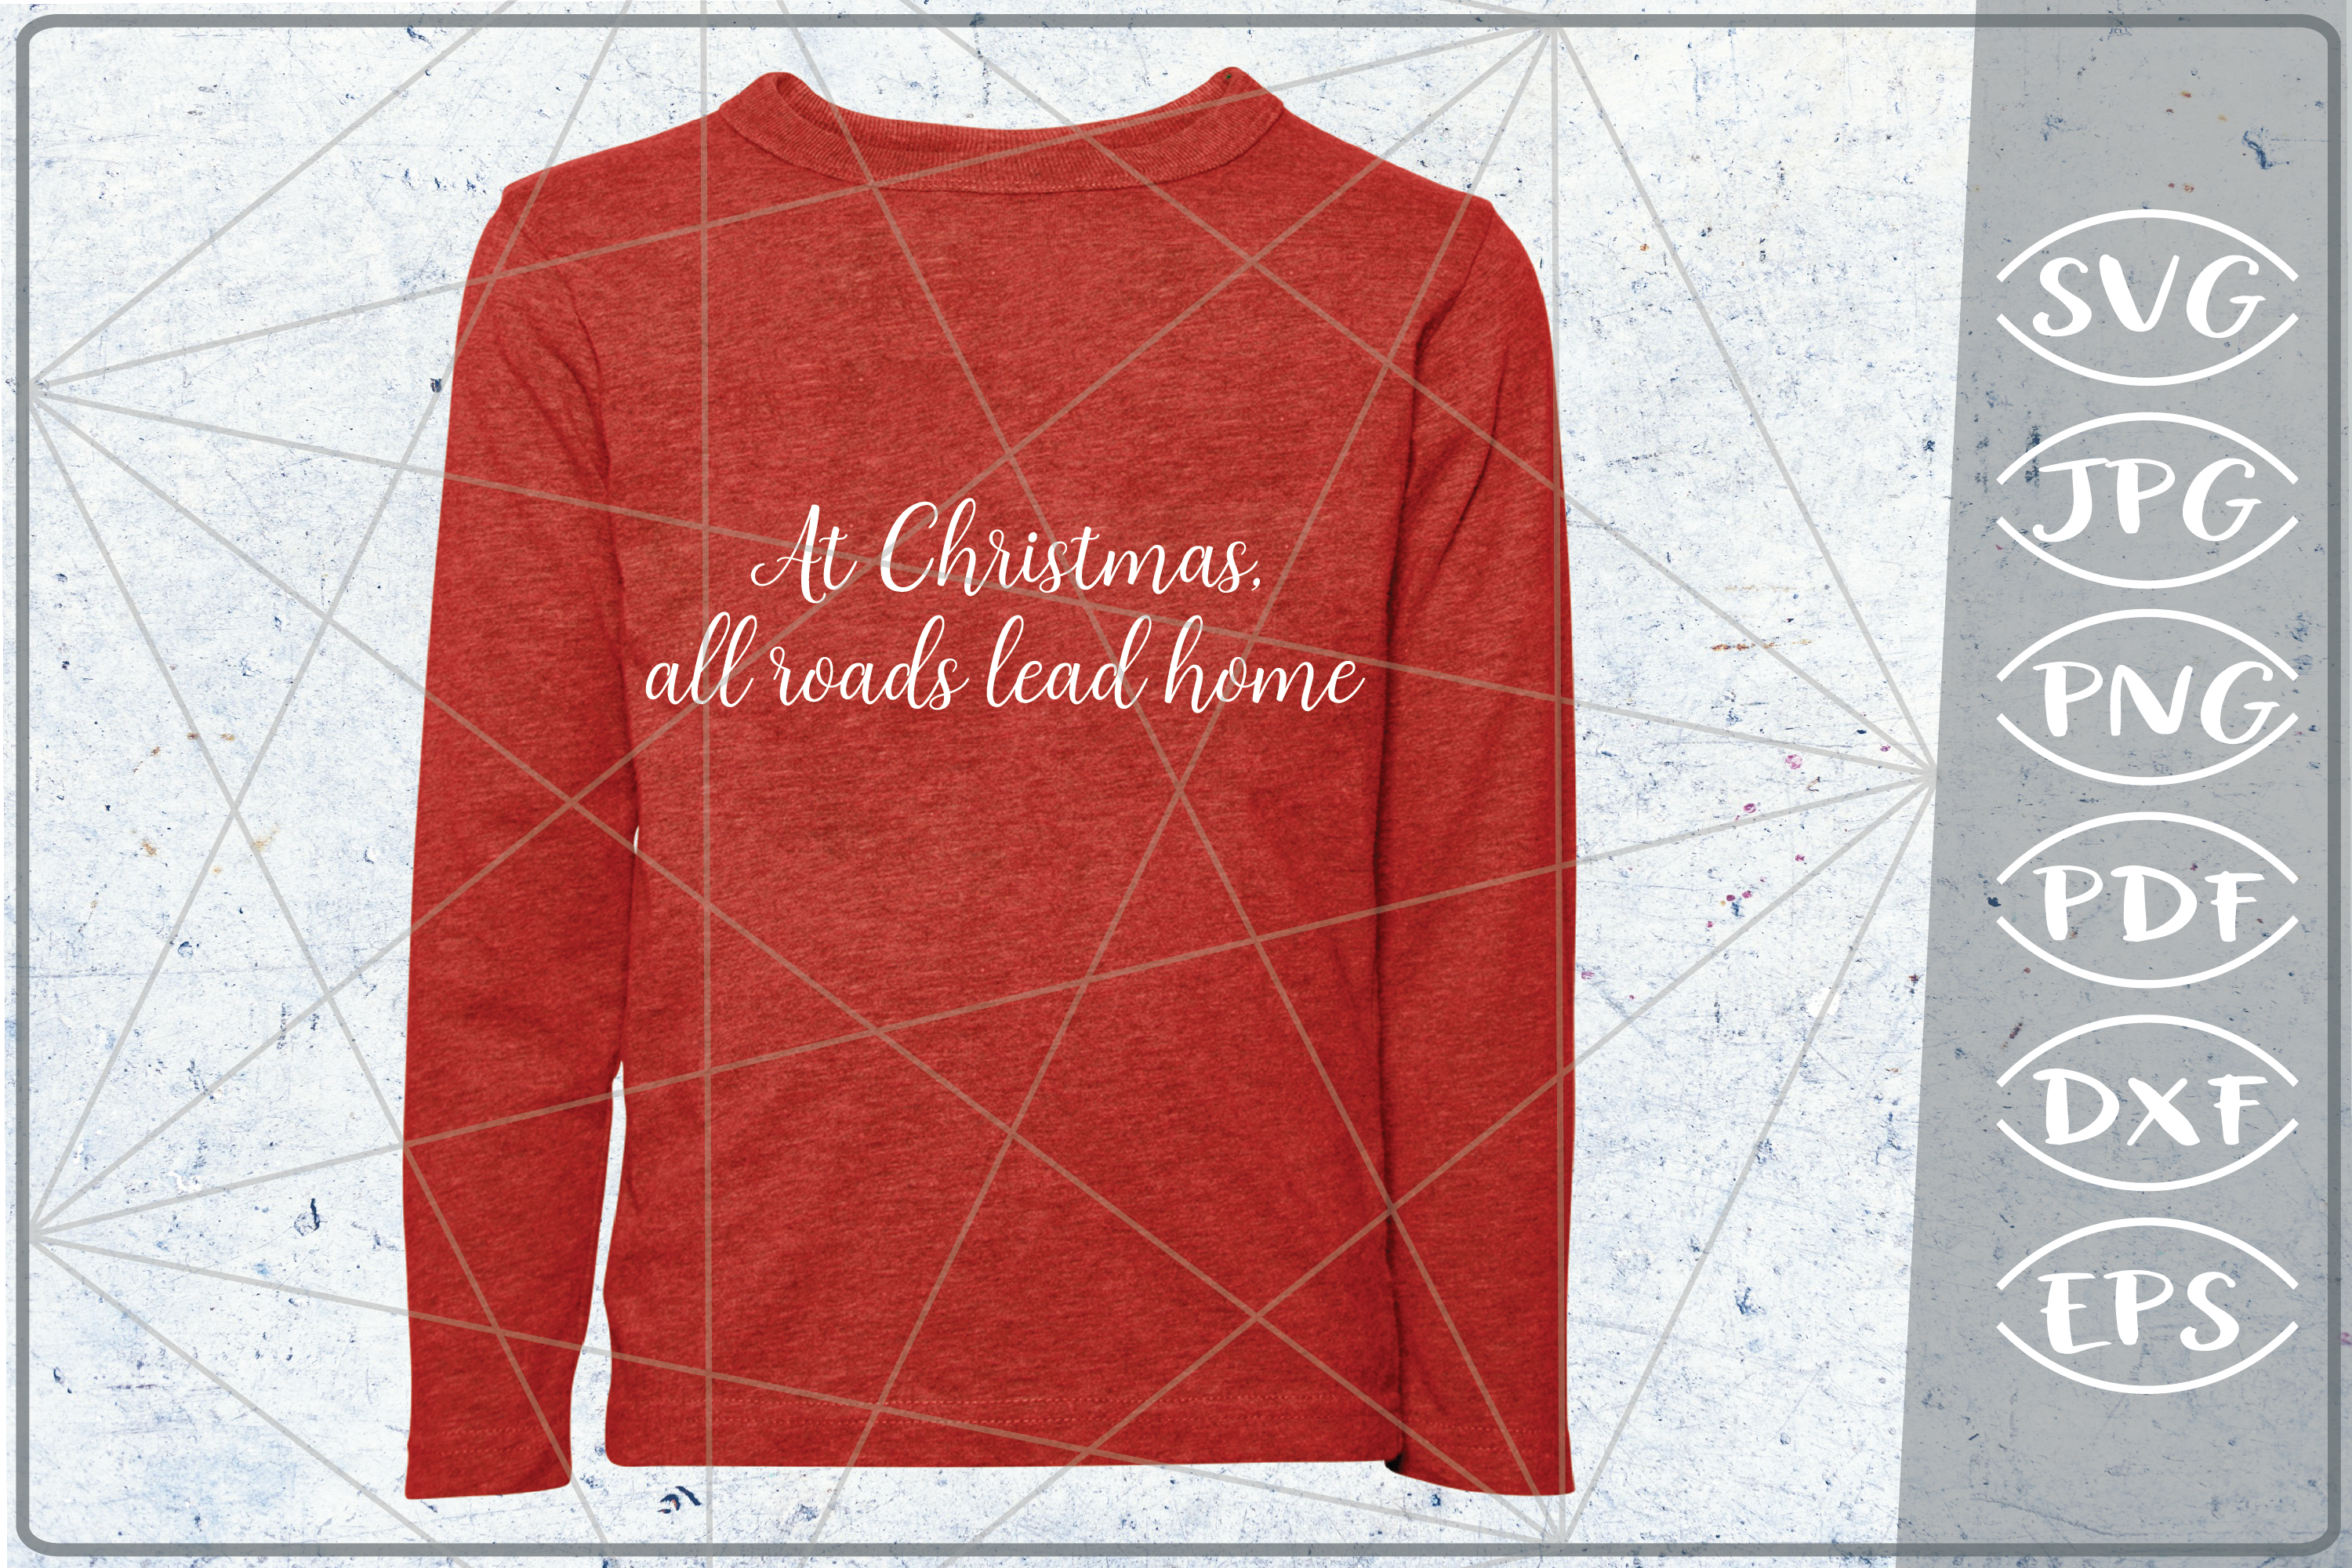 Download Free At Christmas All Roads Lead Home Graphic By Cute Graphic for Cricut Explore, Silhouette and other cutting machines.